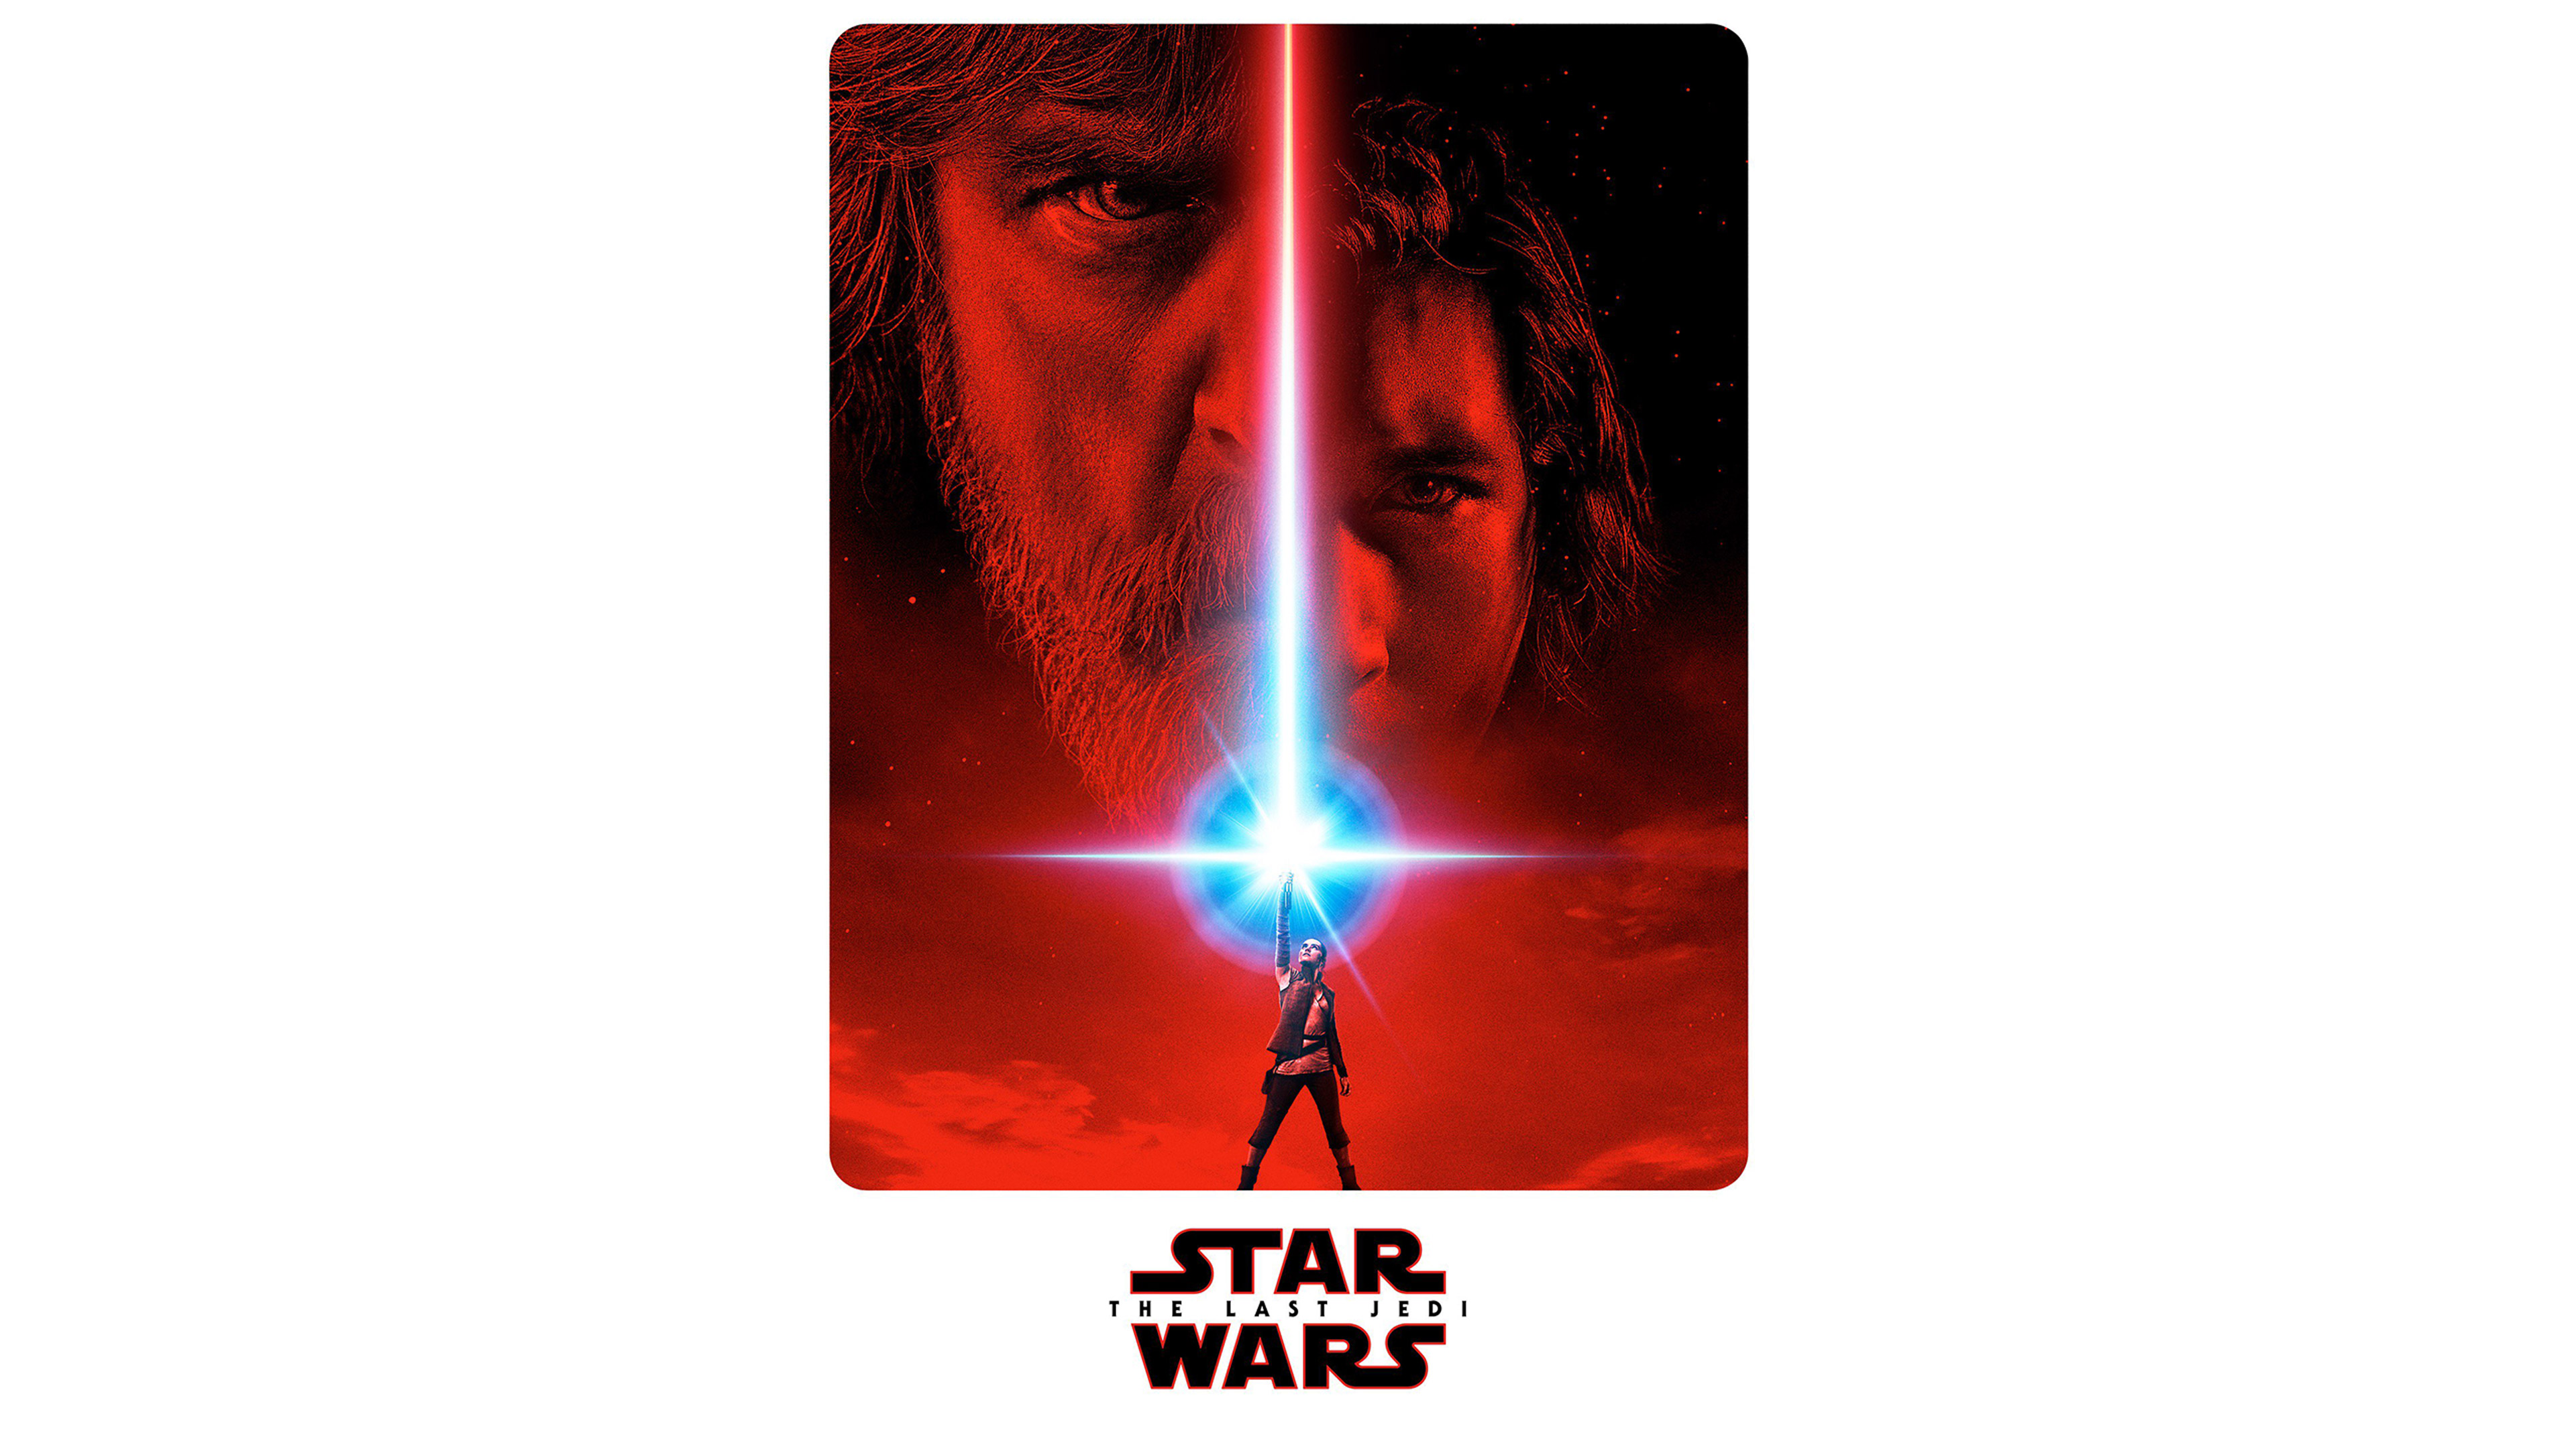 Star Wars The Last Jedi Hd Movies 4k Wallpapers Images Backgrounds Photos And Pictures